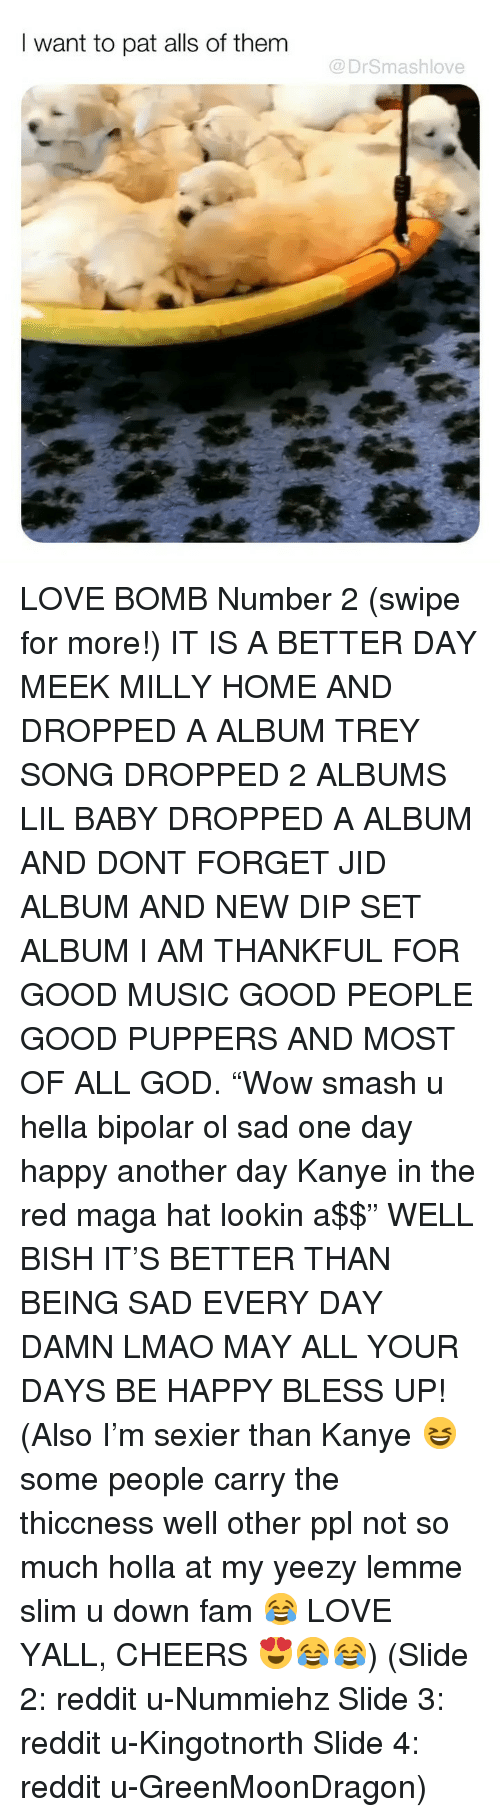 "Bless Up, Fam, and God: I want to pat alls of them  @DrSmashlove LOVE BOMB Number 2 (swipe for more!) IT IS A BETTER DAY MEEK MILLY HOME AND DROPPED A ALBUM TREY SONG DROPPED 2 ALBUMS LIL BABY DROPPED A ALBUM AND DONT FORGET JID ALBUM AND NEW DIP SET ALBUM I AM THANKFUL FOR GOOD MUSIC GOOD PEOPLE GOOD PUPPERS AND MOST OF ALL GOD. ""Wow smash u hella bipolar ol sad one day happy another day Kanye in the red maga hat lookin a$$"" WELL BISH IT'S BETTER THAN BEING SAD EVERY DAY DAMN LMAO MAY ALL YOUR DAYS BE HAPPY BLESS UP! (Also I'm sexier than Kanye 😆 some people carry the thiccness well other ppl not so much holla at my yeezy lemme slim u down fam 😂 LOVE YALL, CHEERS 😍😂😂) (Slide 2: reddit u-Nummiehz Slide 3: reddit u-Kingotnorth Slide 4: reddit u-GreenMoonDragon)"